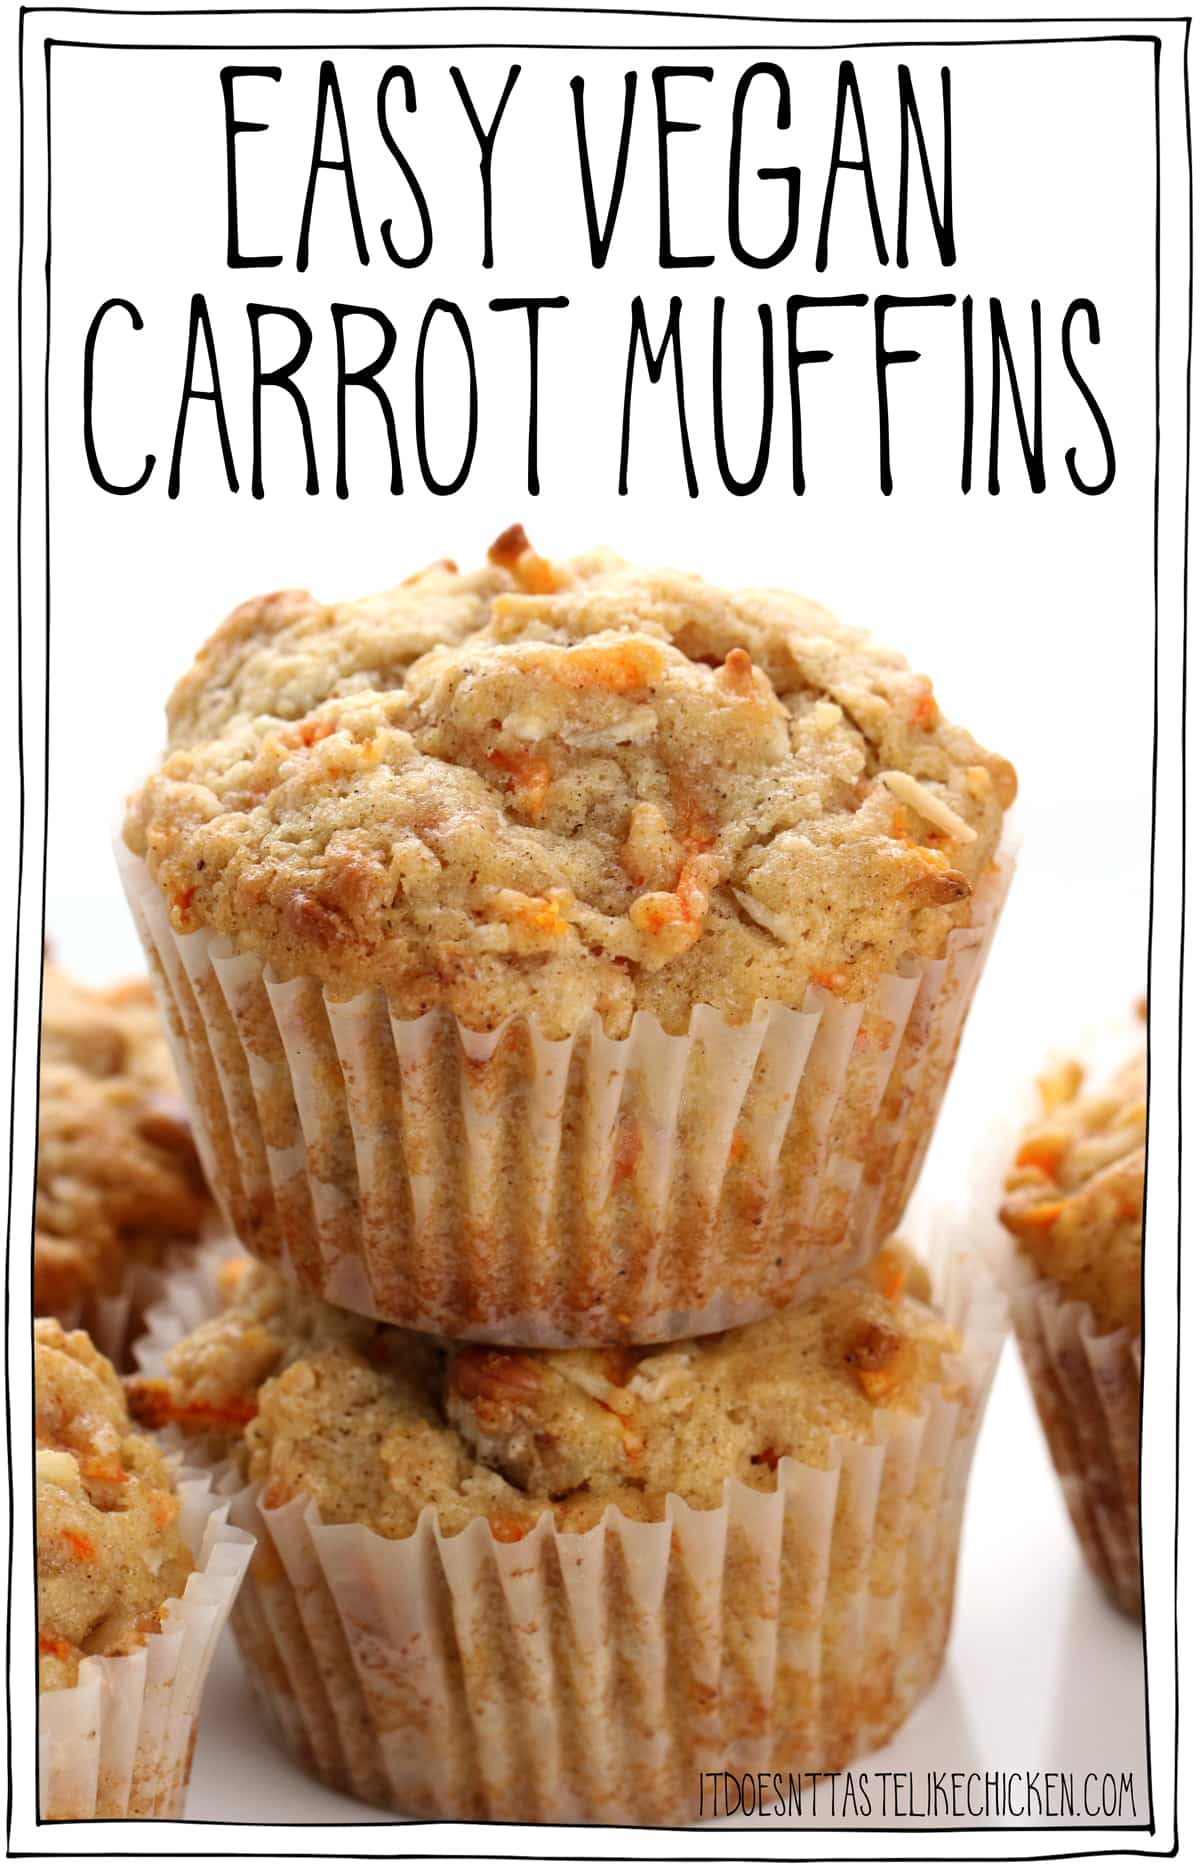 Easy Vegan Carrot Muffins! The tastiest muffins ever. Each muffin is bursting with sweet carrots, crunchy walnuts, chewy coconut, cinnamon, and nutmeg. Making these the BEST carrot muffins you will ever taste! #itdoesnttastelikechicken #veganrecipes #veganbaking #muffins